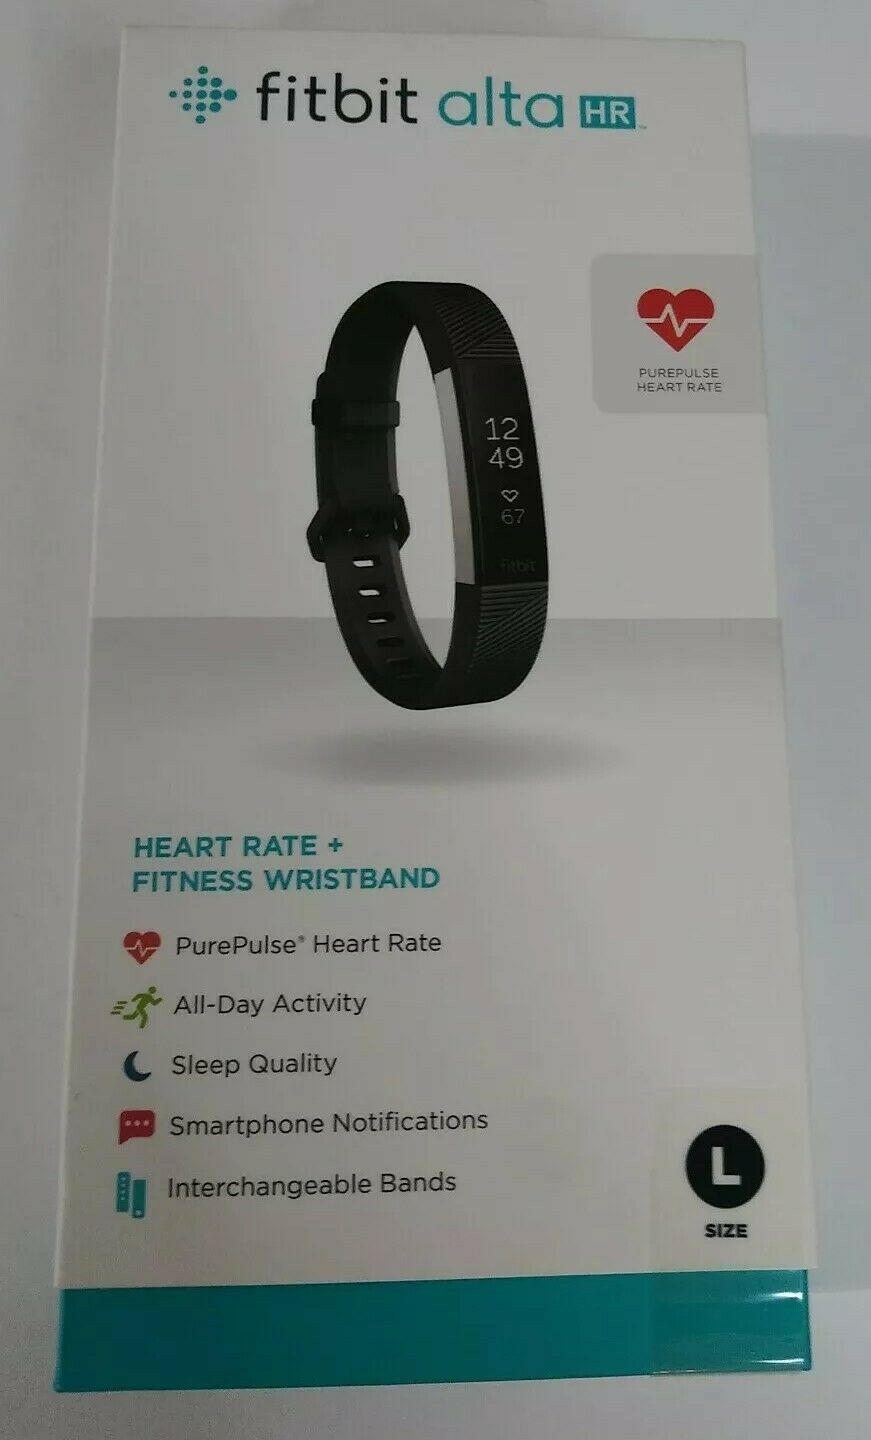 Fitbit Alta HR Fitness Tracker Heart Rate Monitor L (Large) - Black